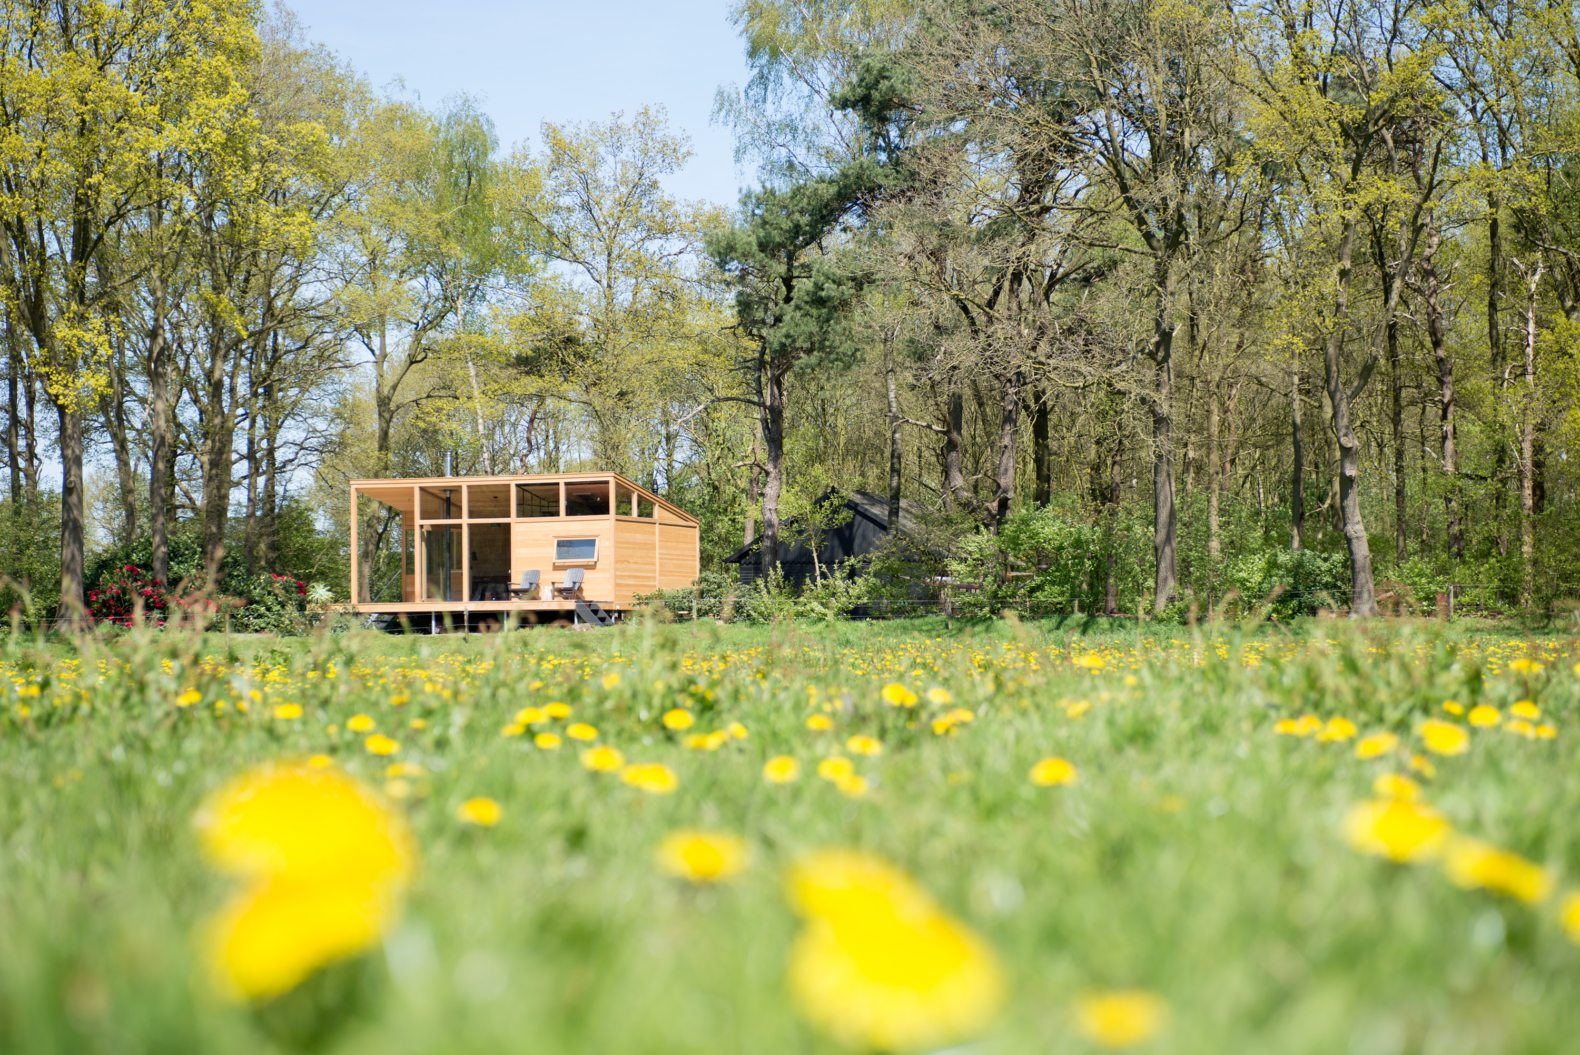 The pre-fab tiny Skyview Cabin is crafted from all-natural and low-impact materials